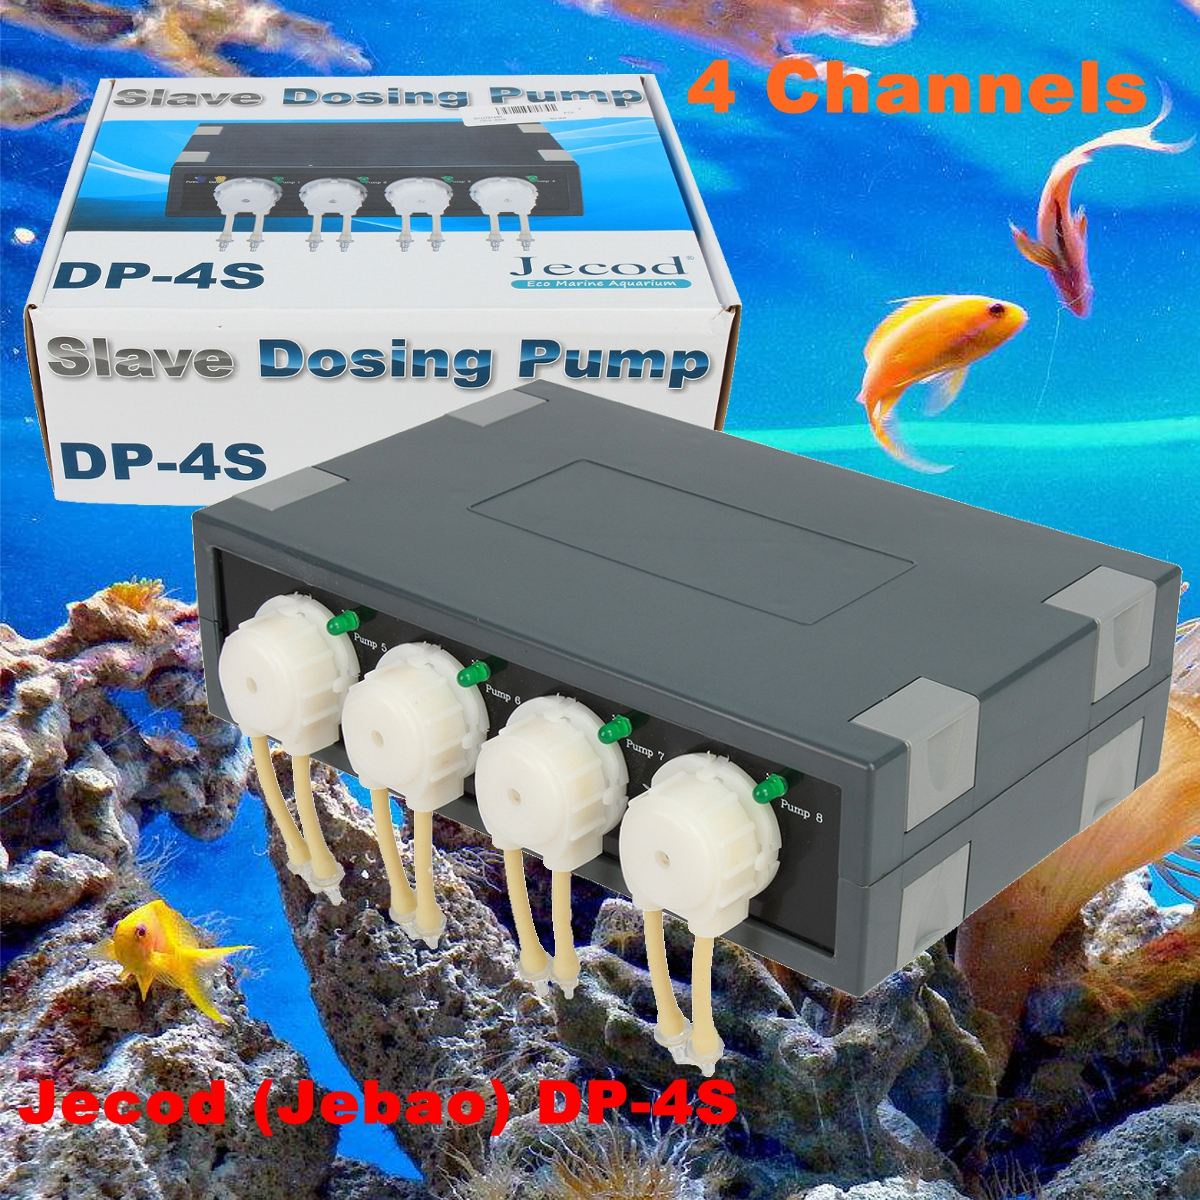 Jebao DP-4S 4 Channel Slave Dosing Pump Automatic Doser Expand DP-4 to 8 Channel Reef CA AB for Marine Reef Aquarium цена